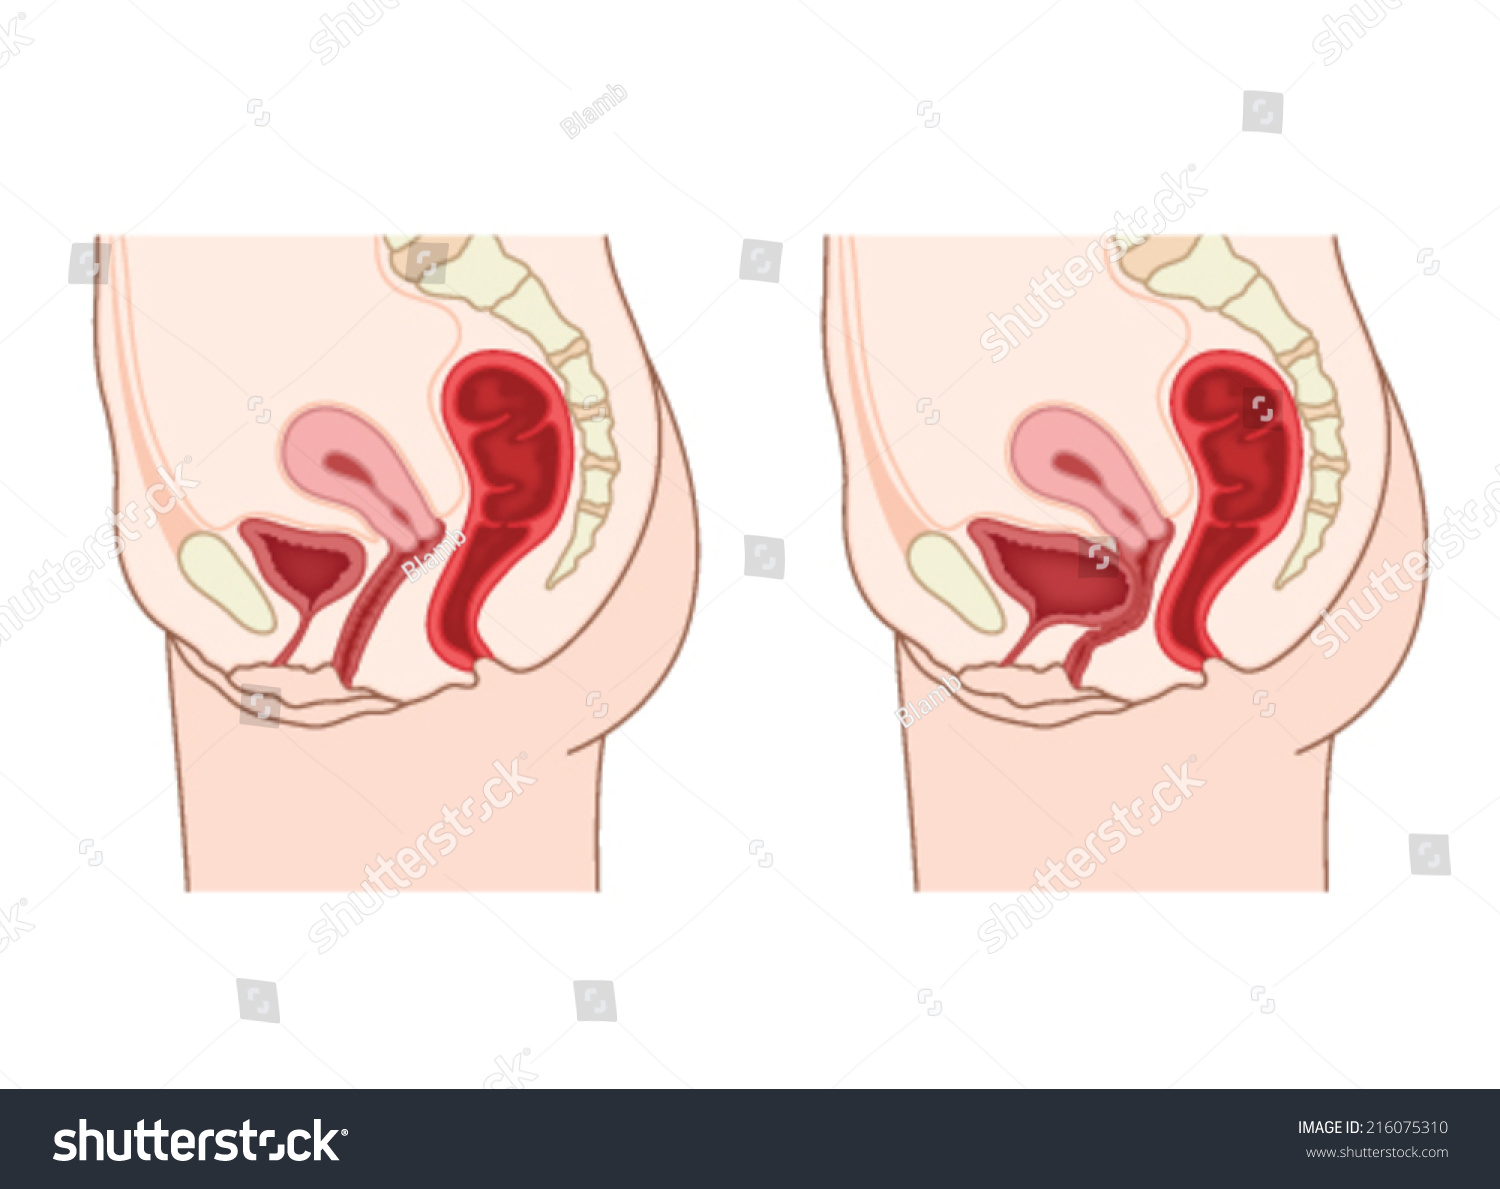 Drawing Show Normal Female Abdominal Anatomy Stock Vector 216075310 ...